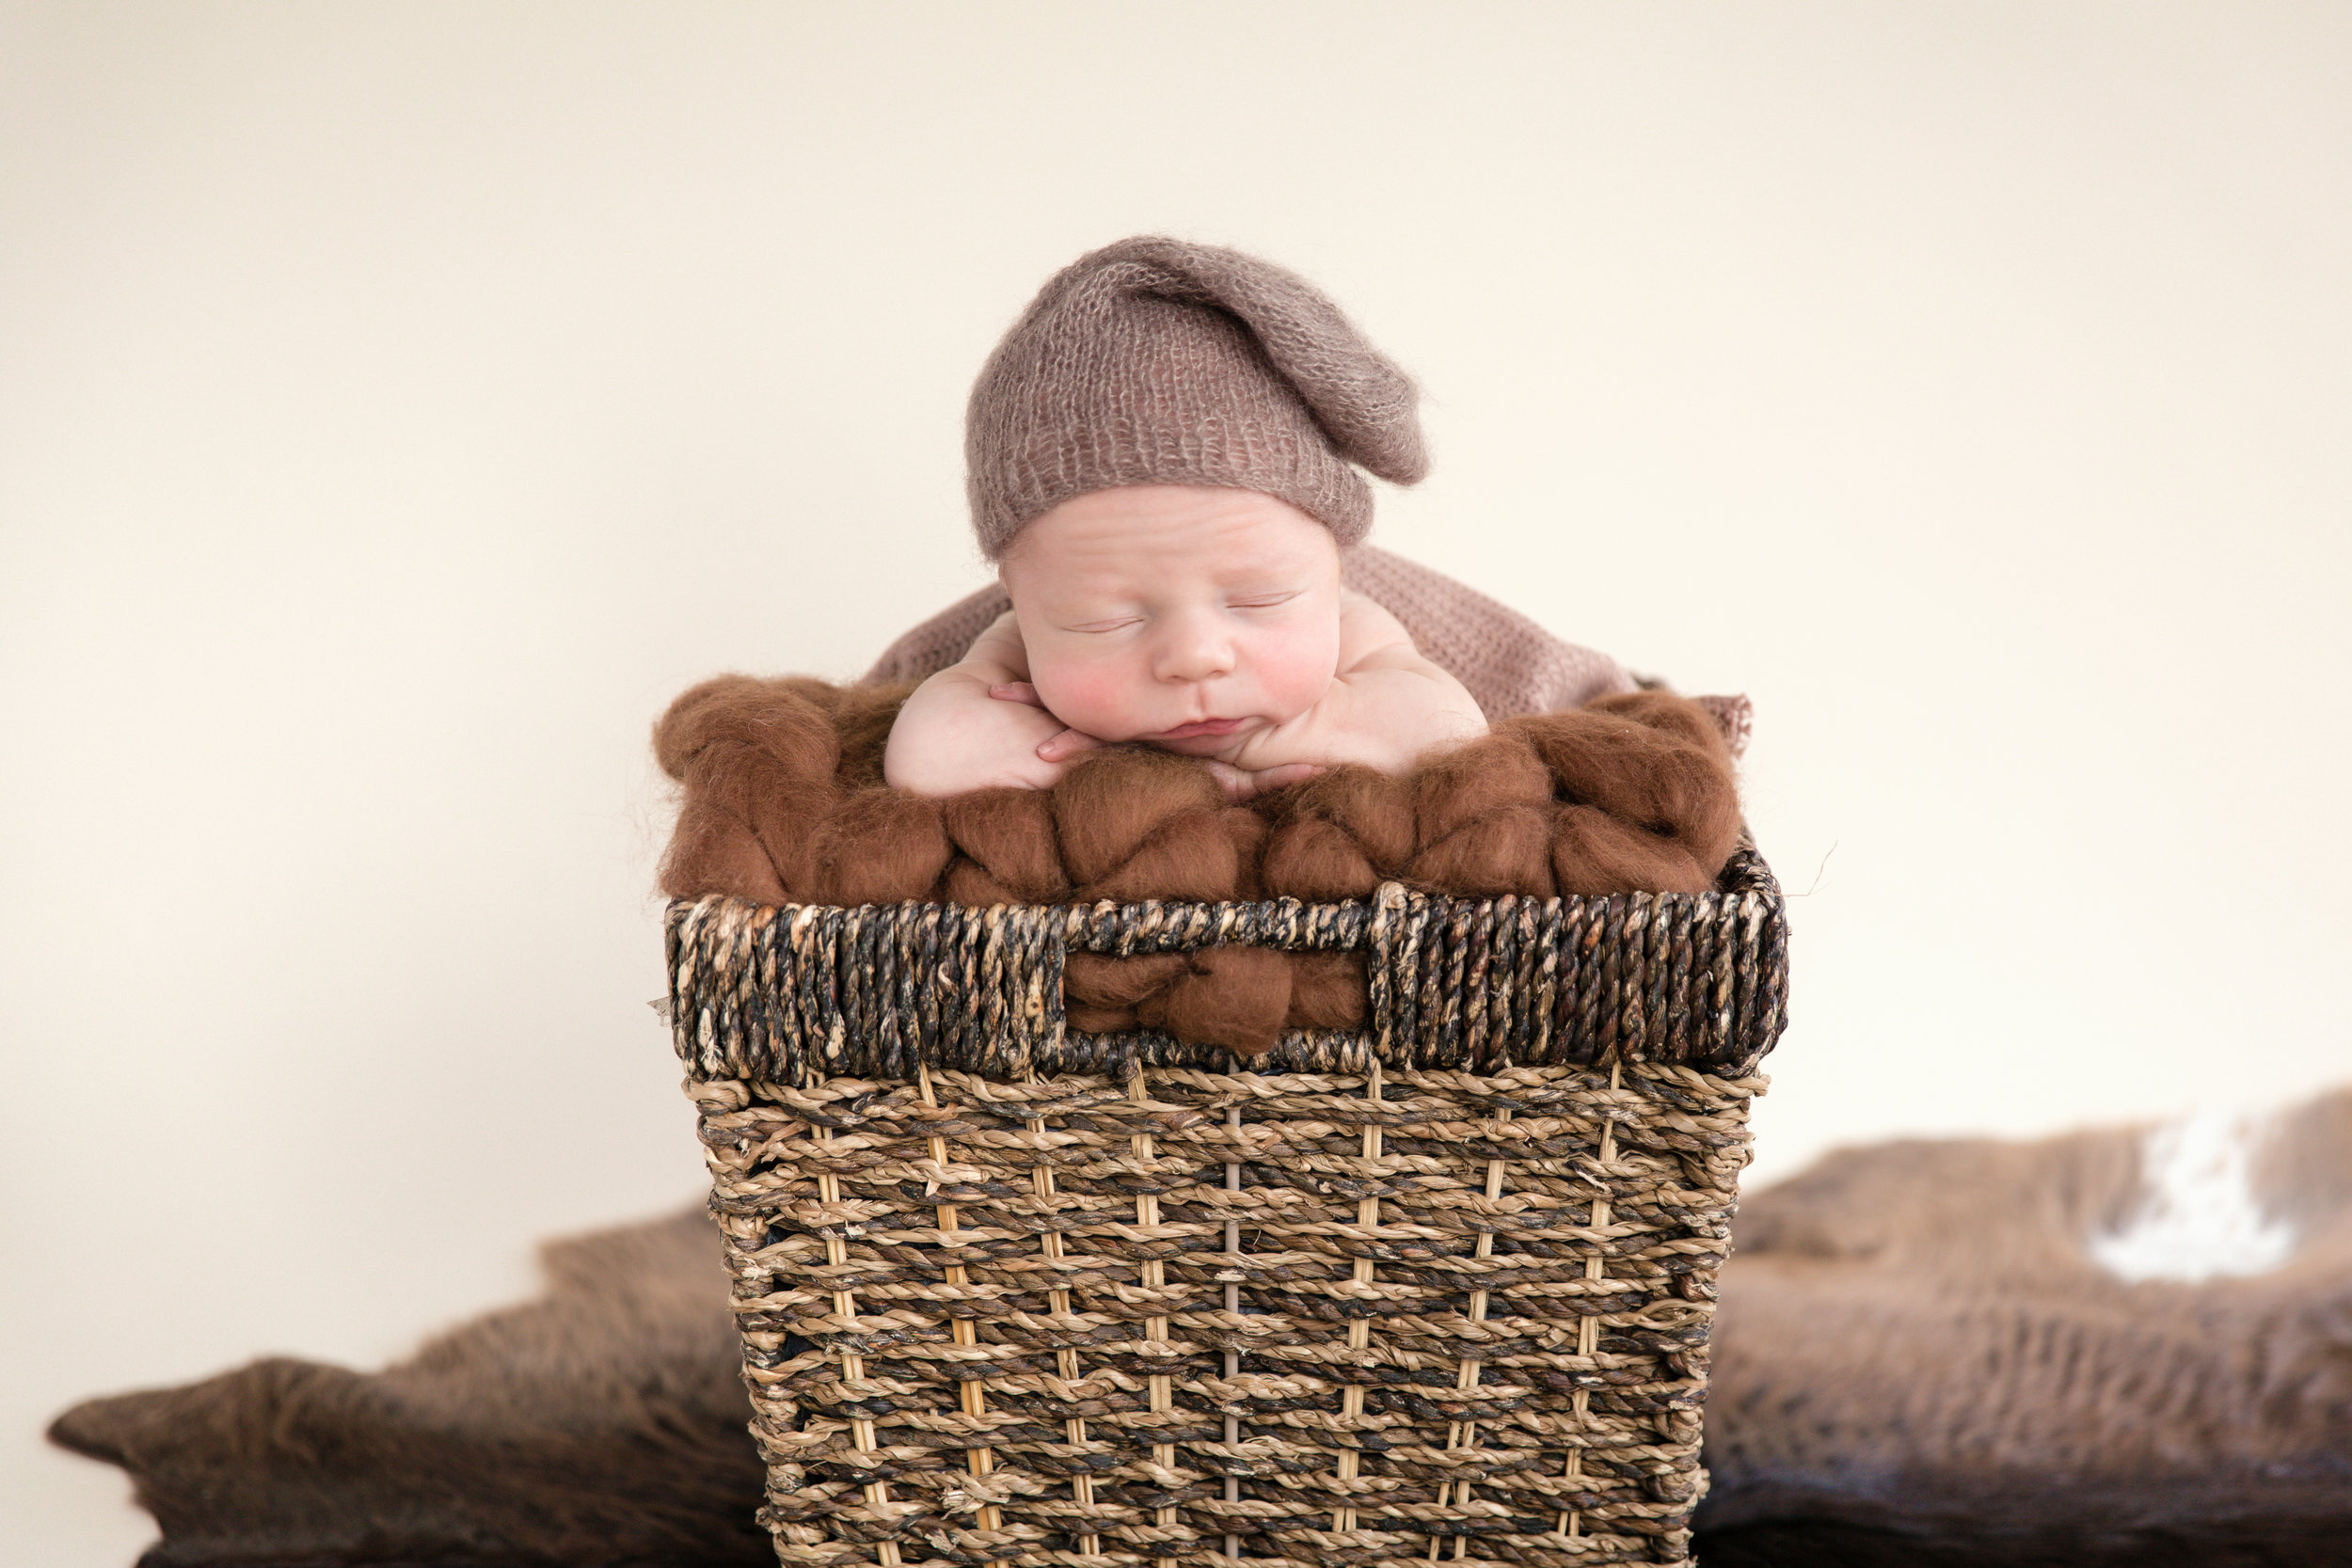 Newborn baby boy in a basket with a cute brown hat. Calgary Newborn photographer. Milashka Photography